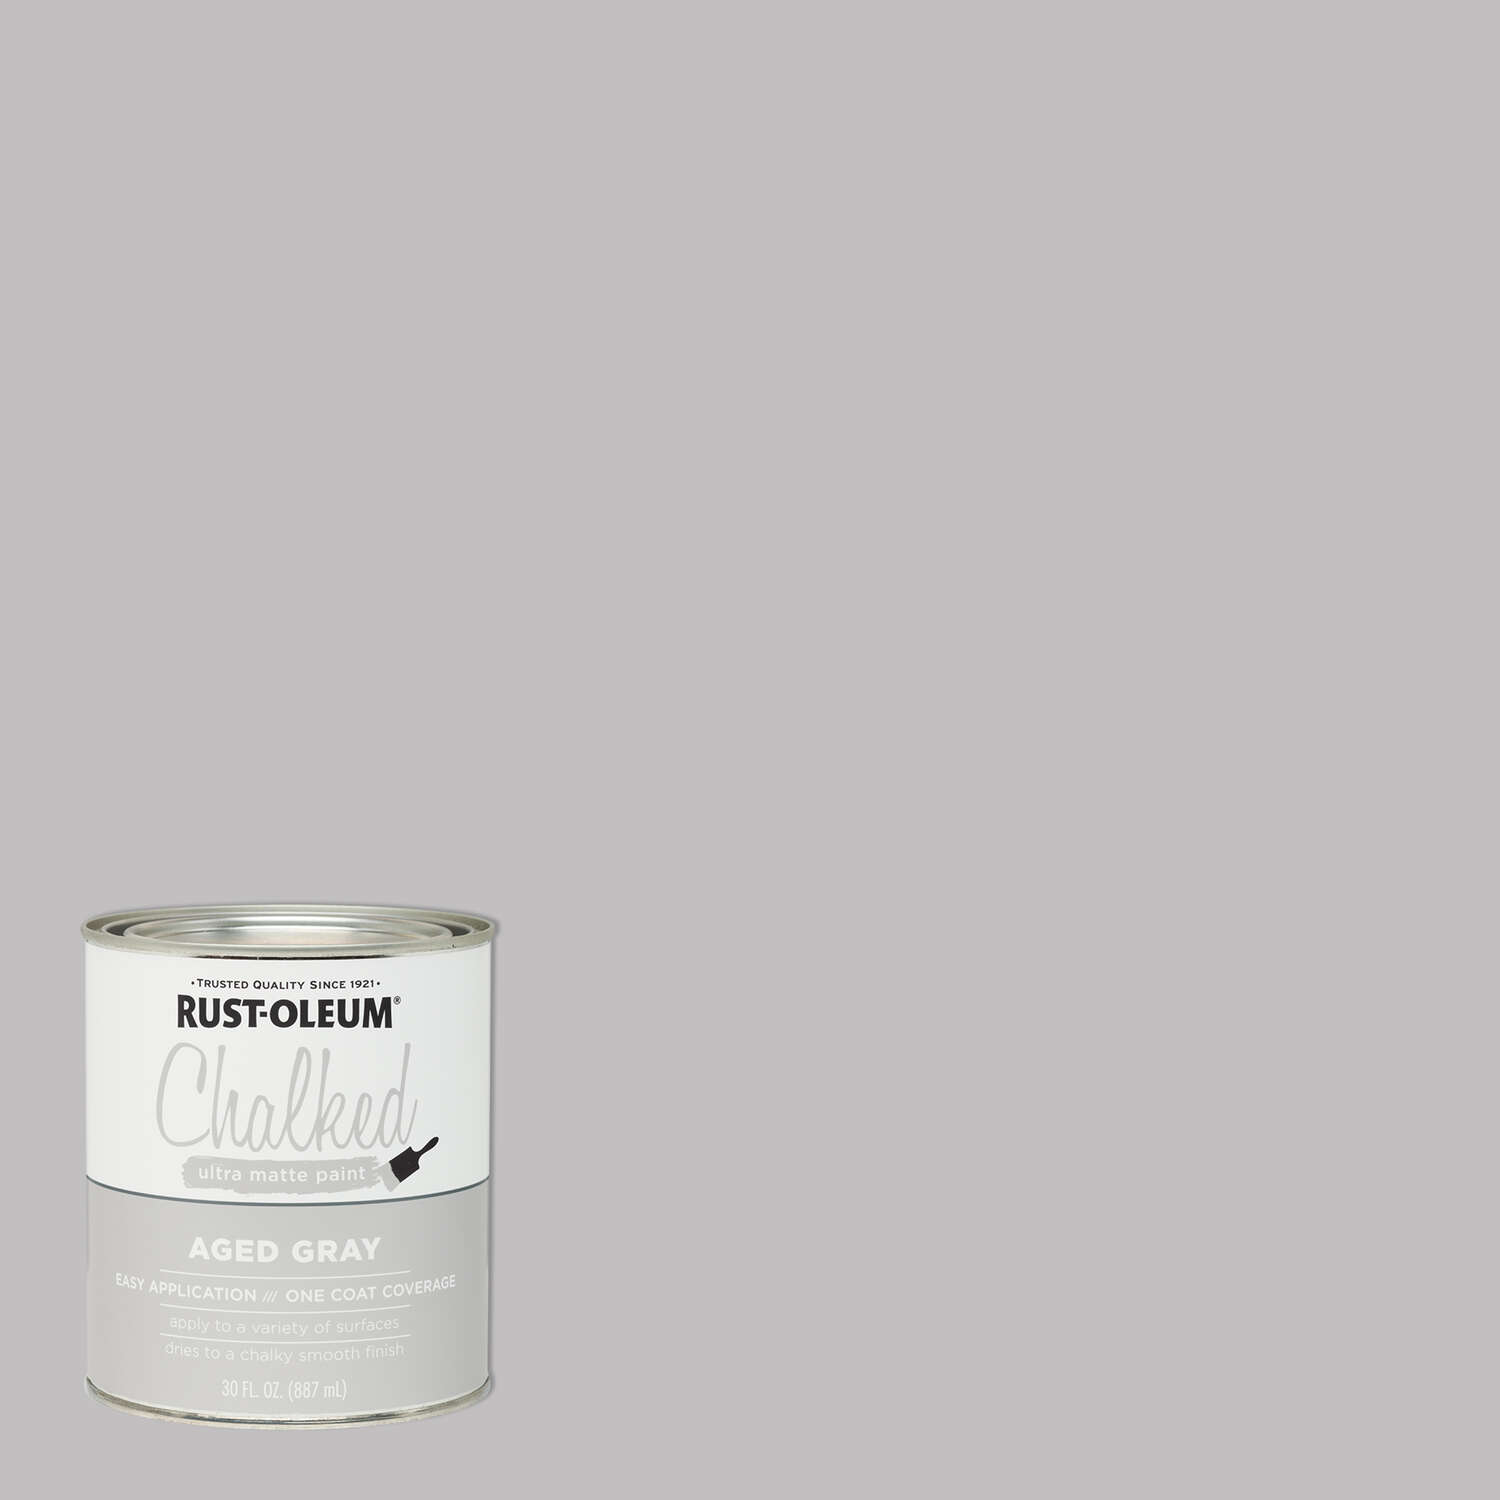 Rust-Oleum  Chalked  Ultra Matte  Aged Gray  Water-Based  Acrylic  Chalk Paint  30 oz.